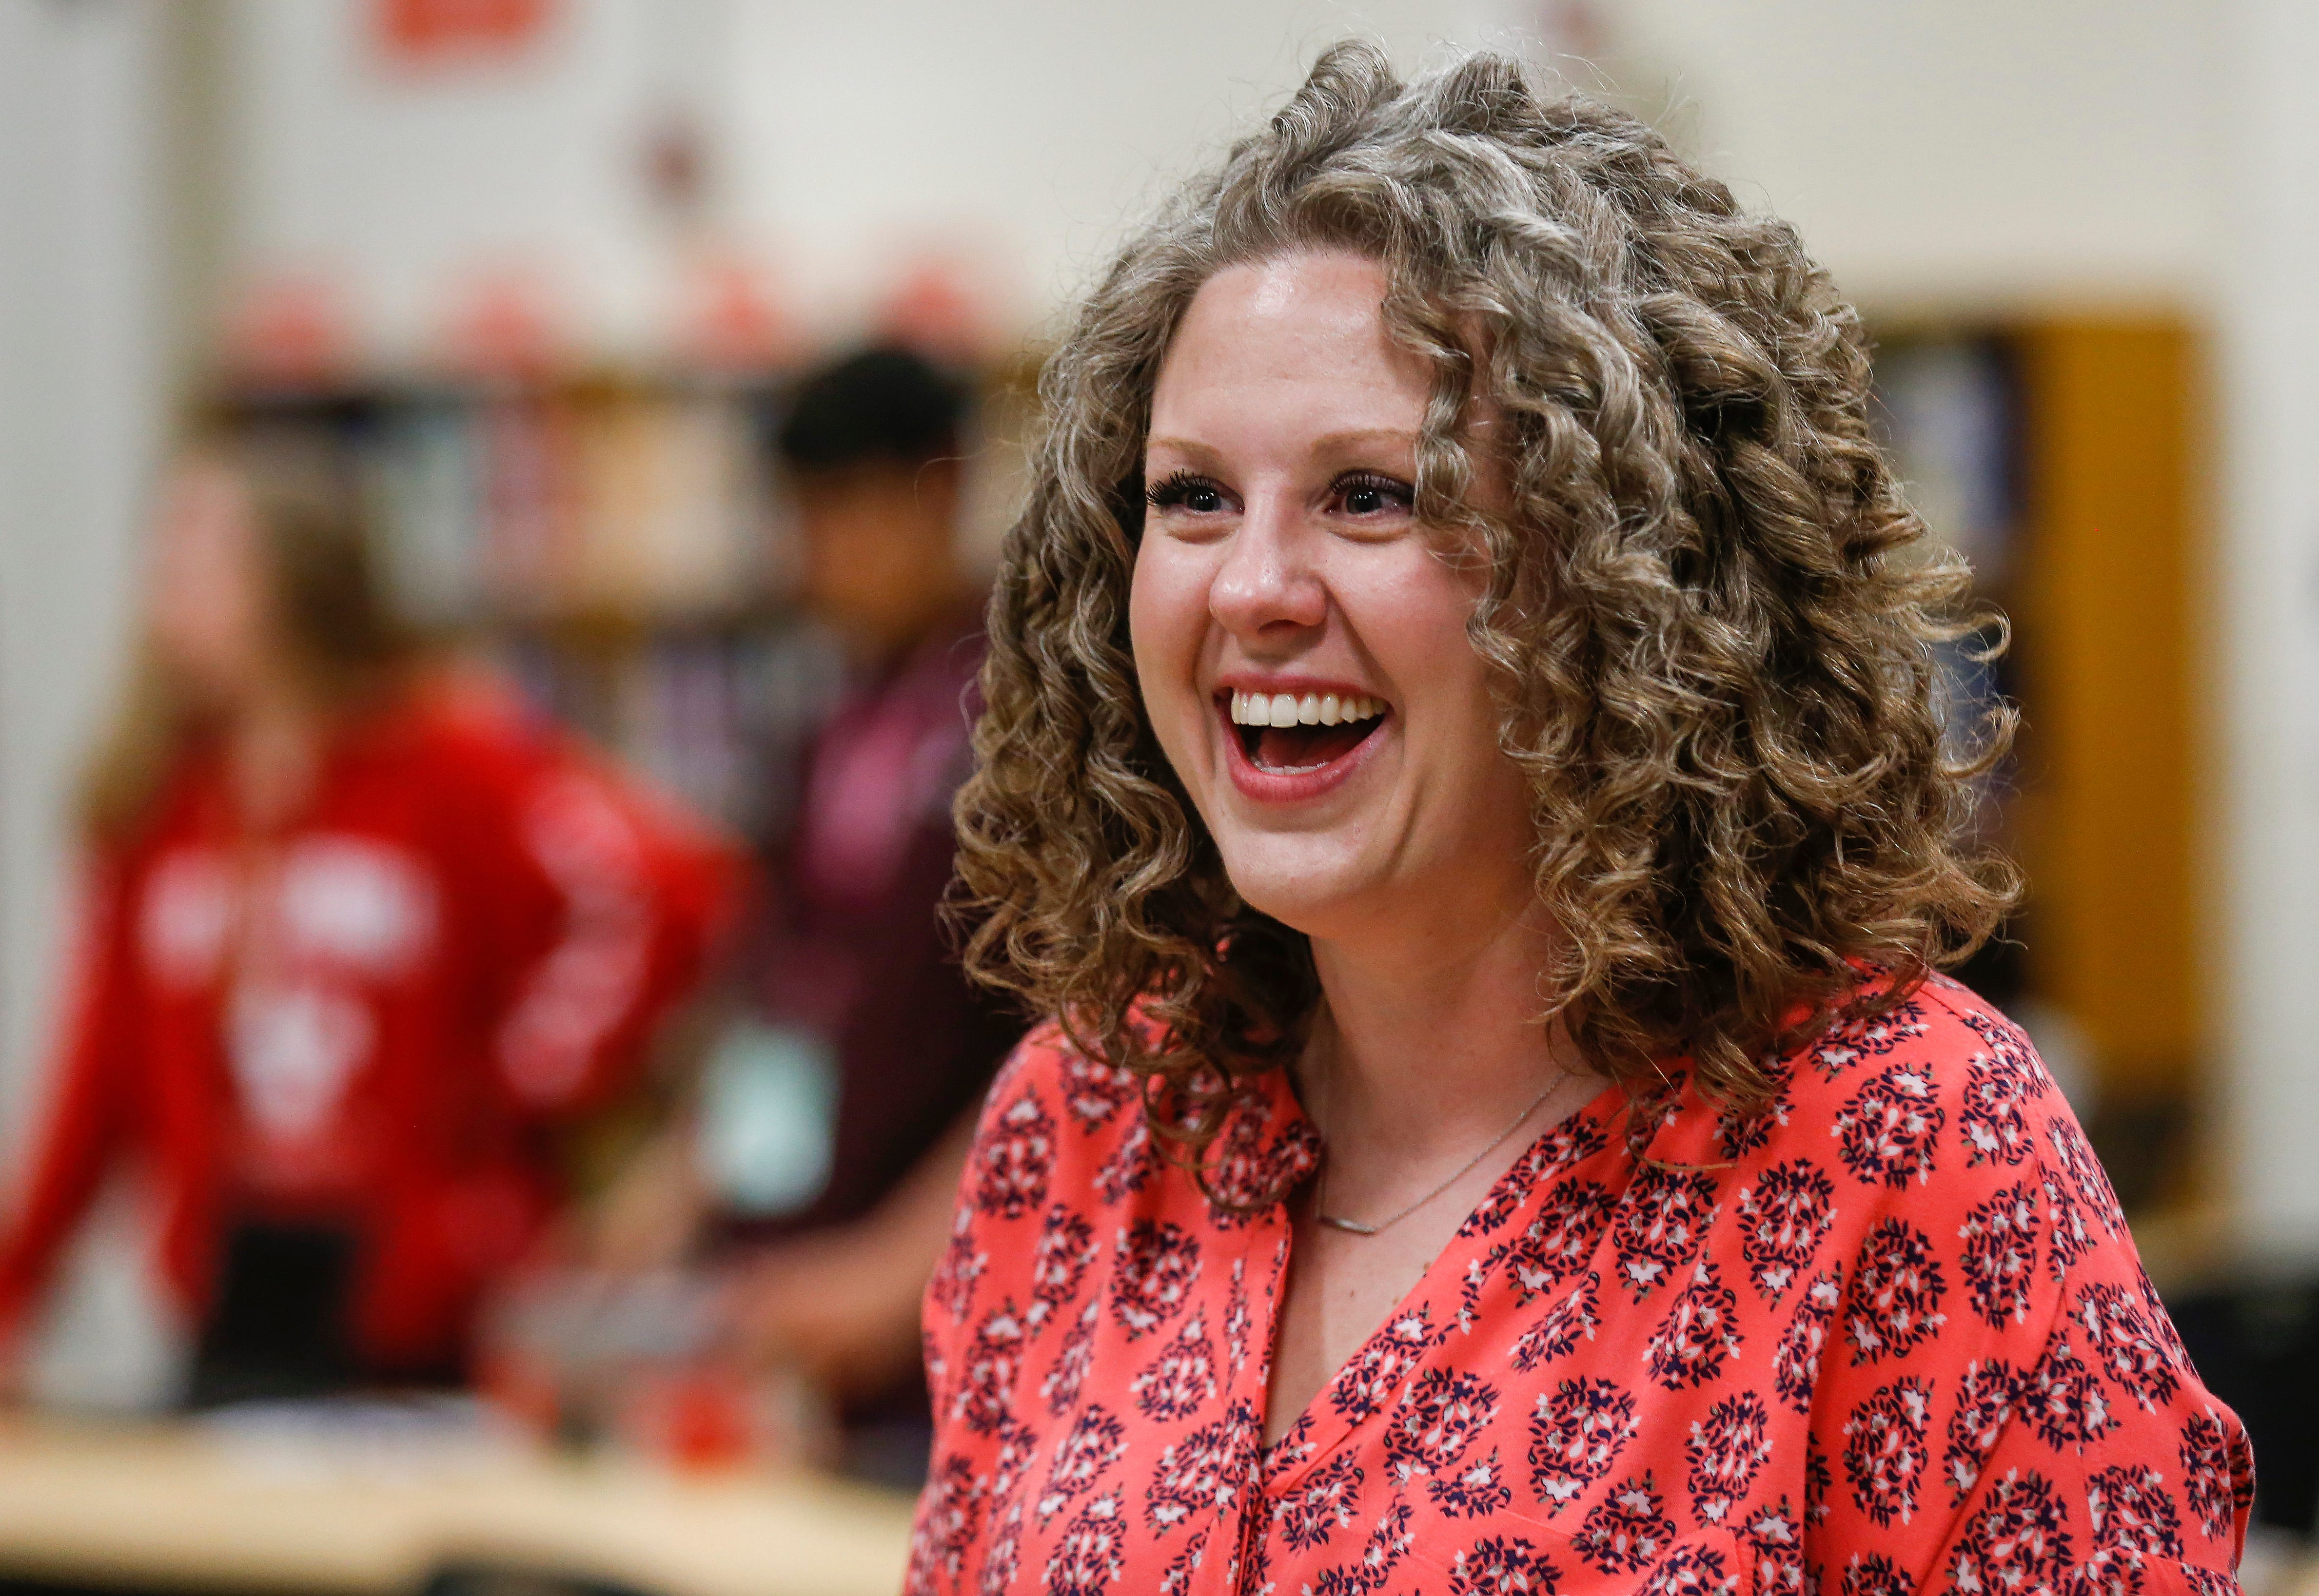 Courtney Dameron, a teacher at Hillcrest High School, laughs with students on Thursday, April 18, 2019. Dameron was named Springfield Public Schools' Teacher of the Year for the 2019-20 school year.